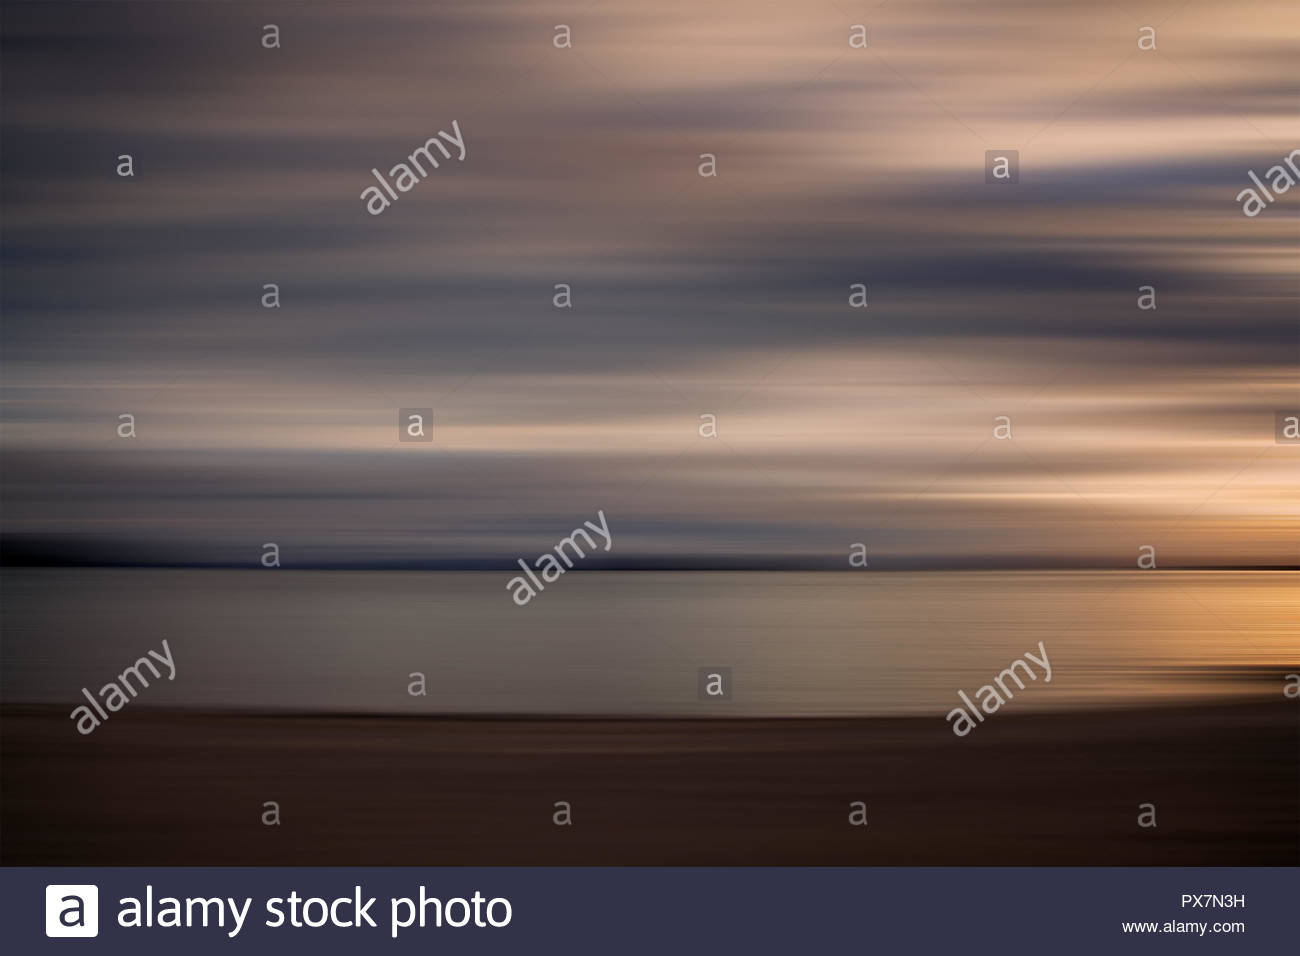 Blurred effect of stunning natural landscapes for computer 1300x956